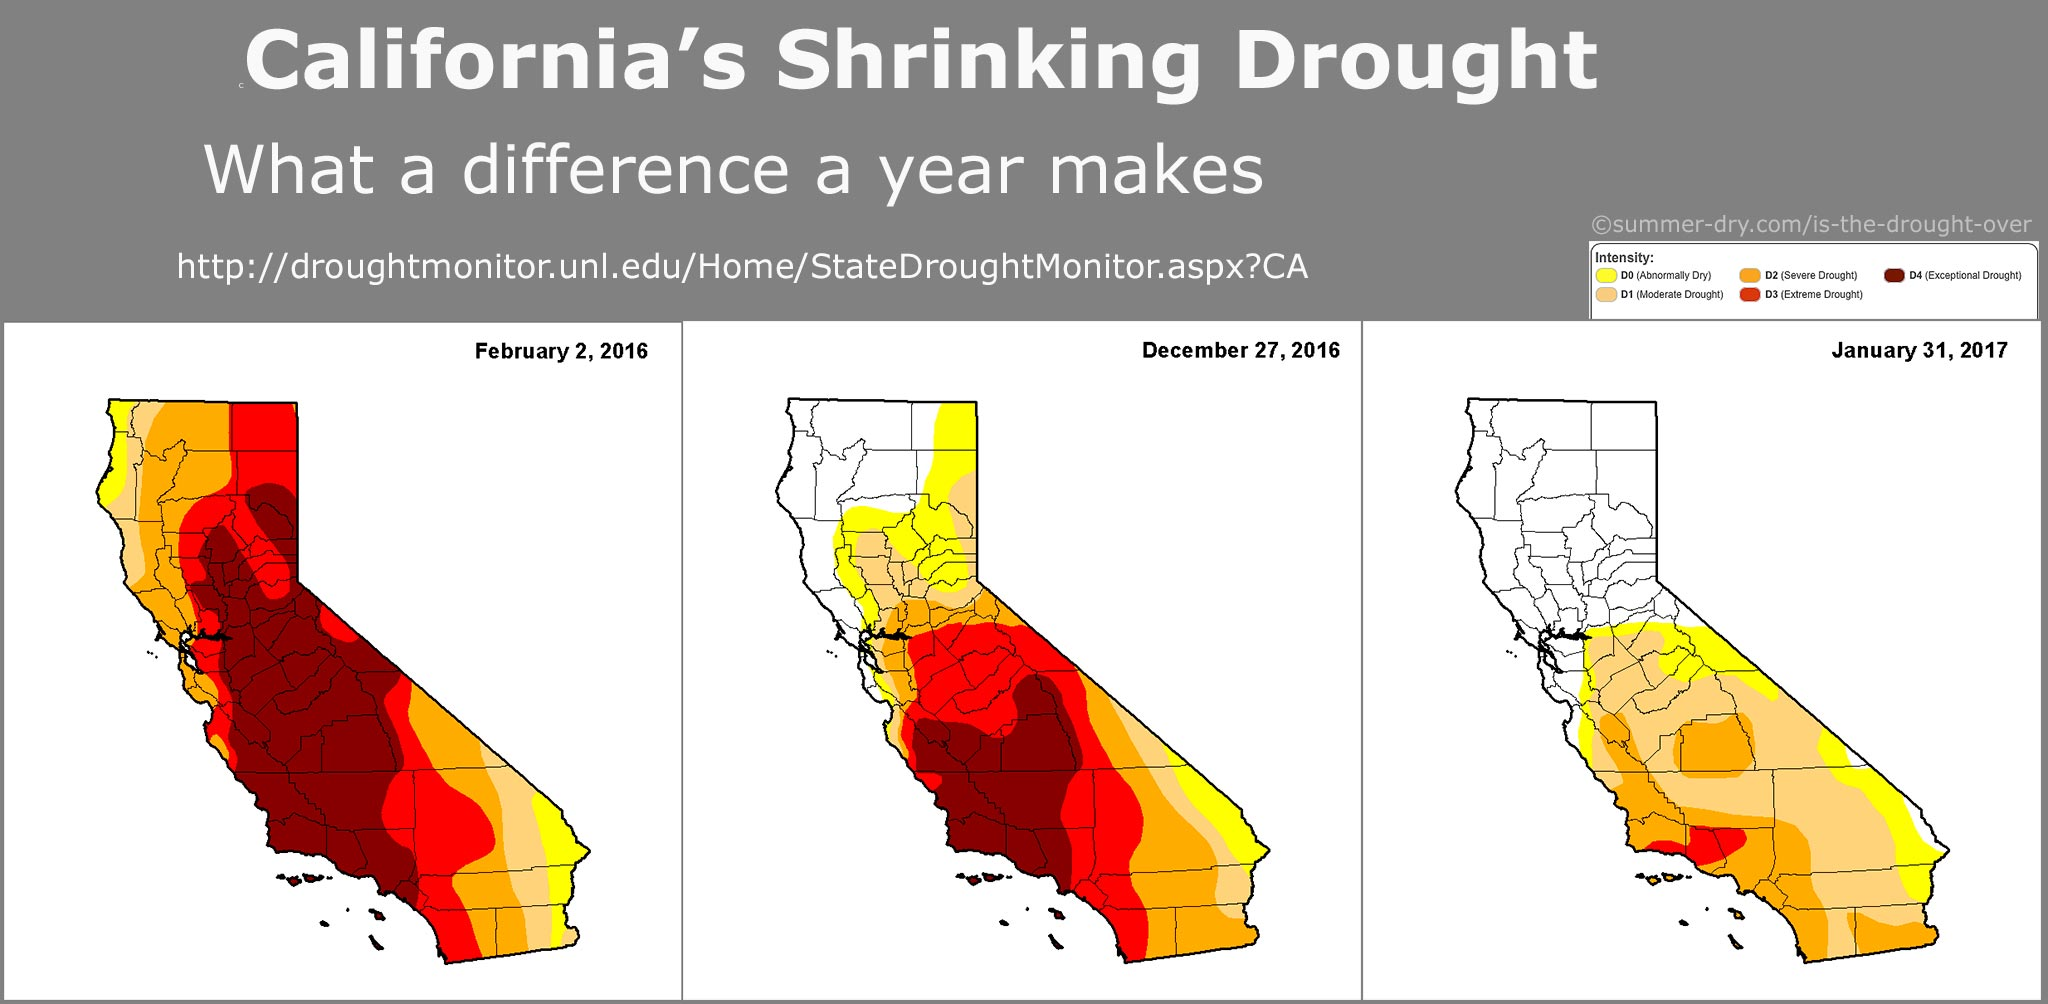 California drought map January 31 2016 - Feb 2 2017;